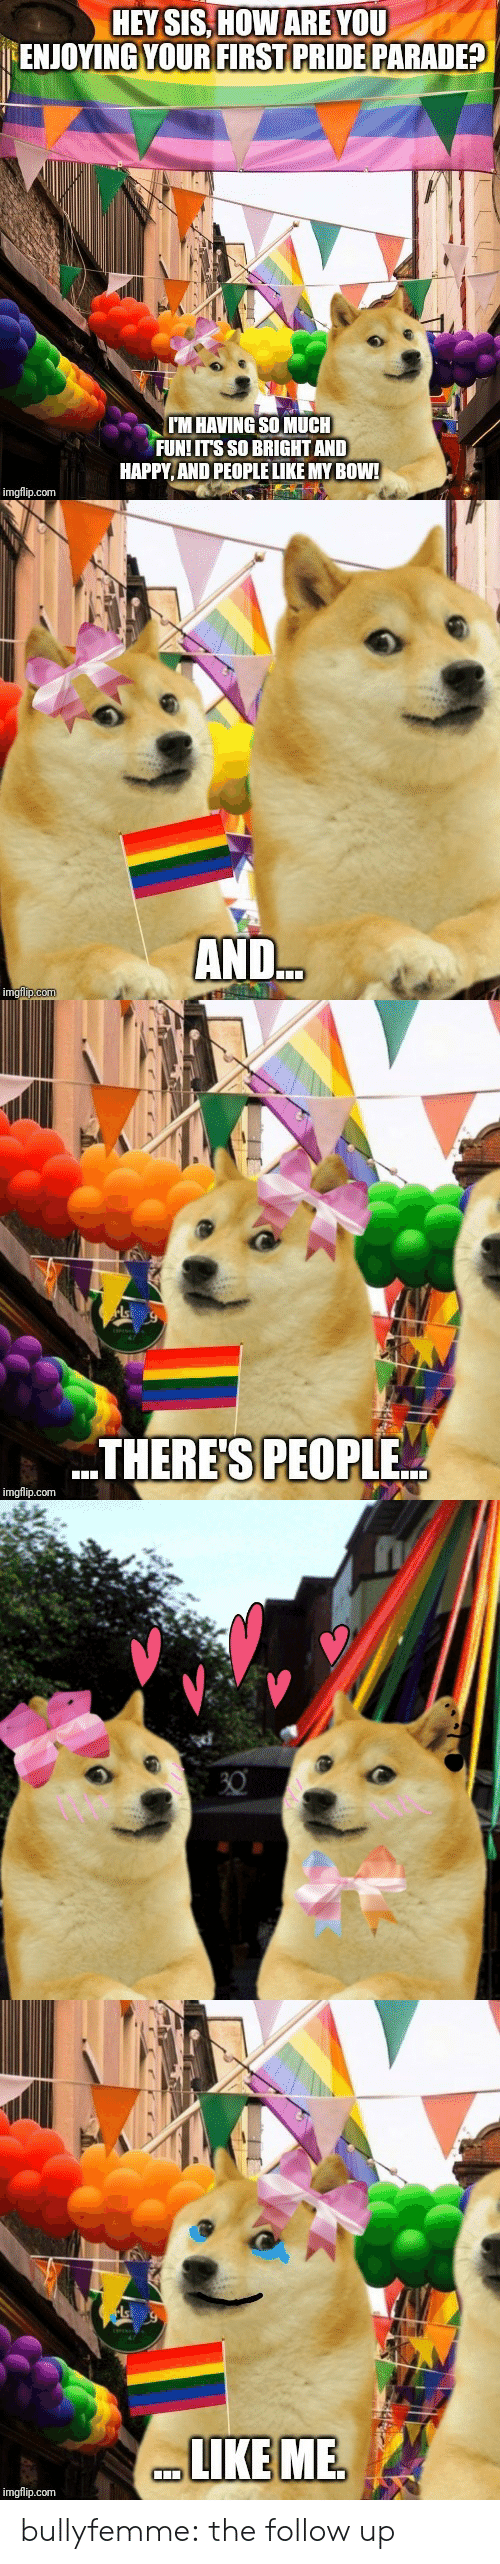 Tumblr, Blog, and Happy: HEY SIS, HOW ARE YOU  ENJOYING YOUR FIRST PRIDE PARADE?  T'M HAVING SO MUCH  FUNIITS SO BRIGHT AND  HAPPY, AND PEOPLE LIKE MY BOW!  imgflip.com   AND.   THERE'S PEOPLE..  imgflip.com   LIKEME  imgflip.com bullyfemme:  the follow up